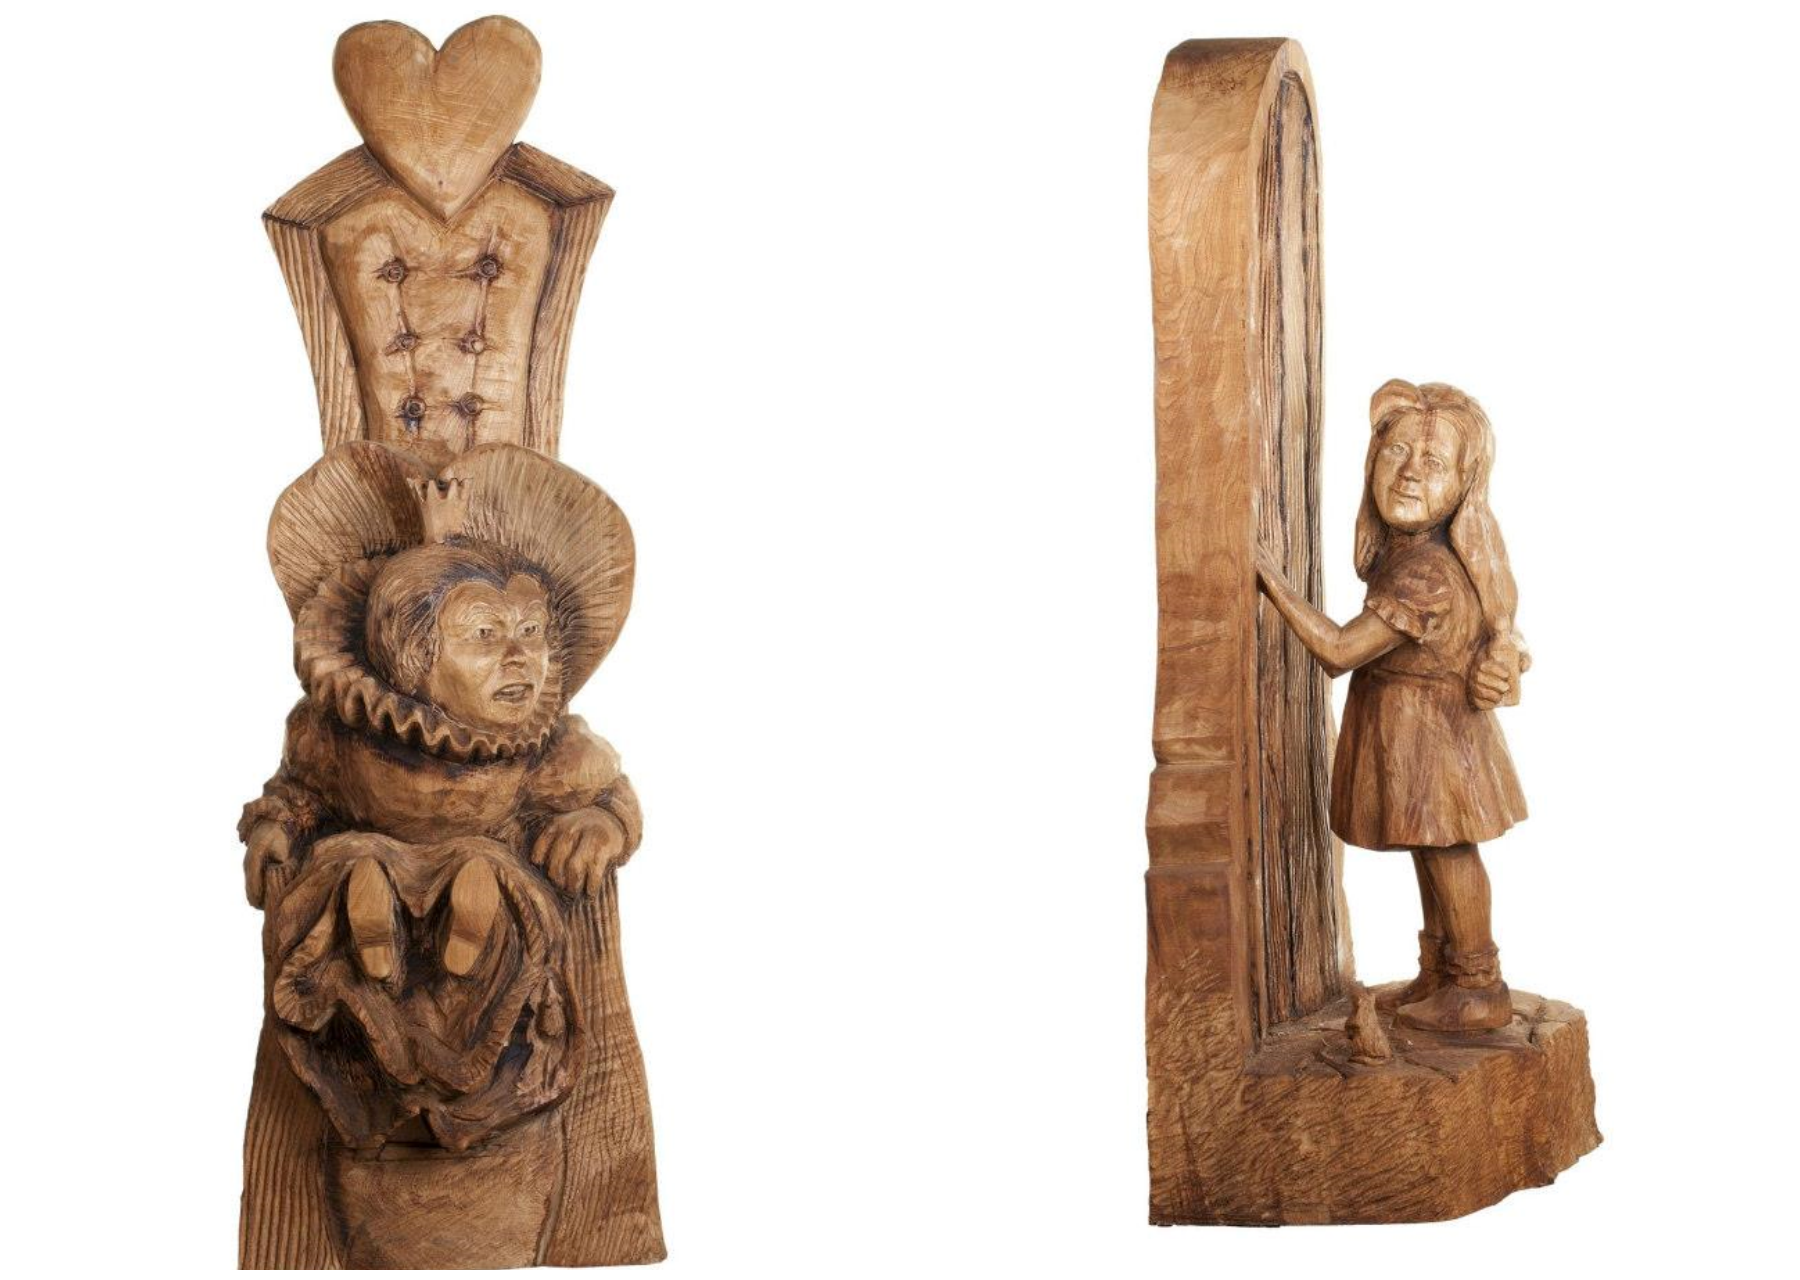 Alice in Wonderland and Queen of Hearts sculptures from one of Simon O'Rourke's wooden sculpture trails